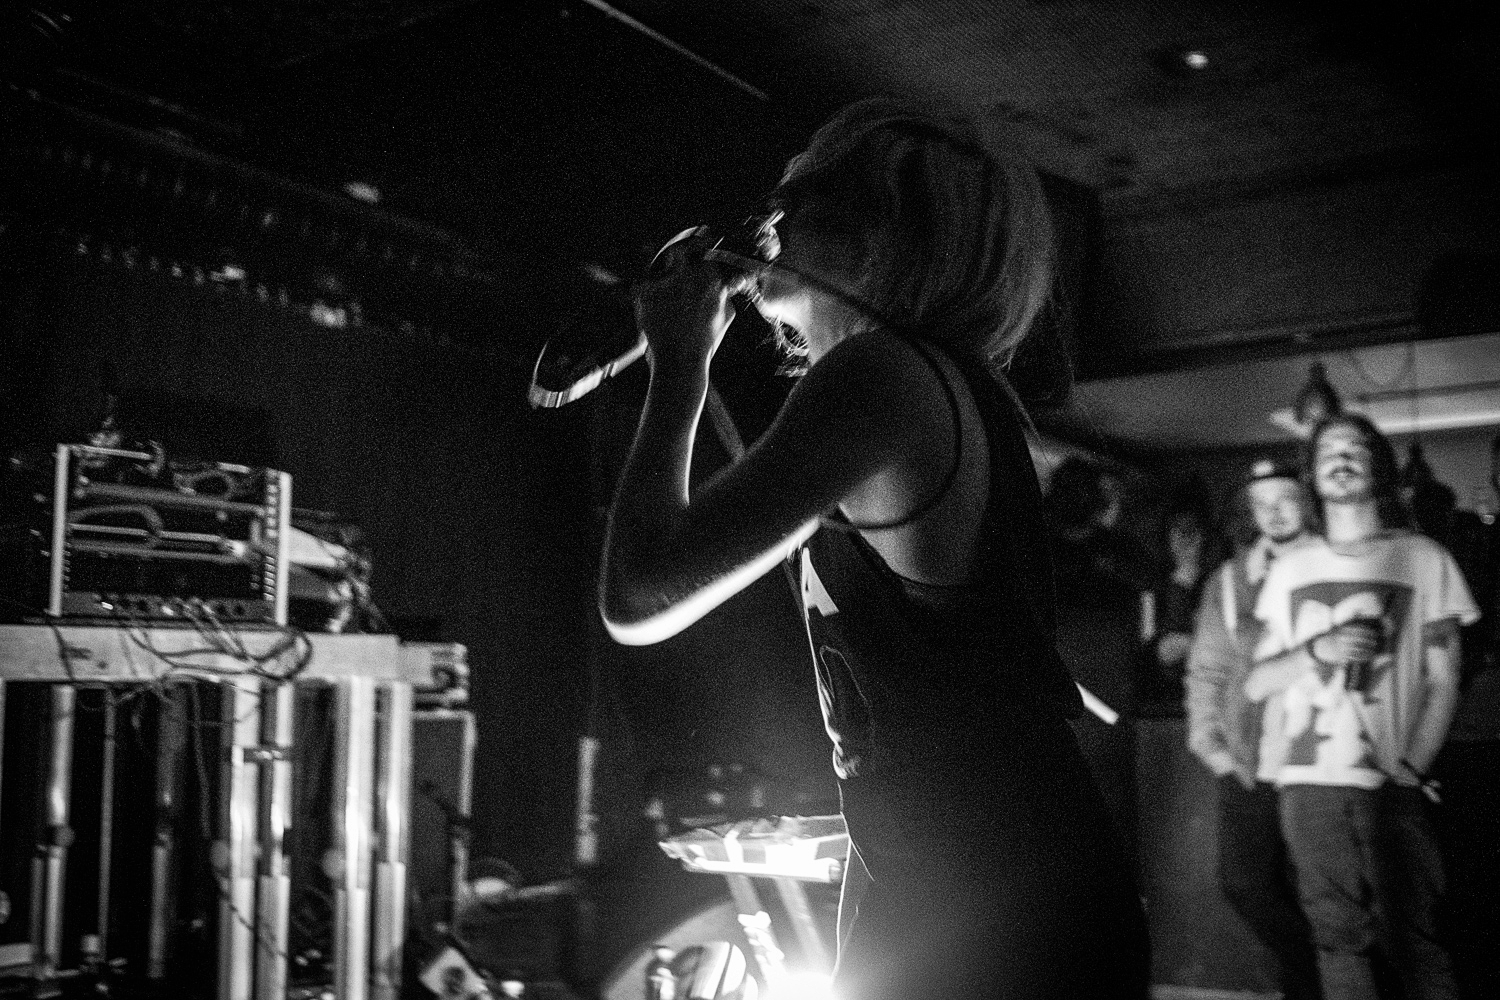 20190418-Lingua-Ignota-@-Bad-Bonn-026-Cred_Michael_Lamertz_@indie.and_.more_.jpg